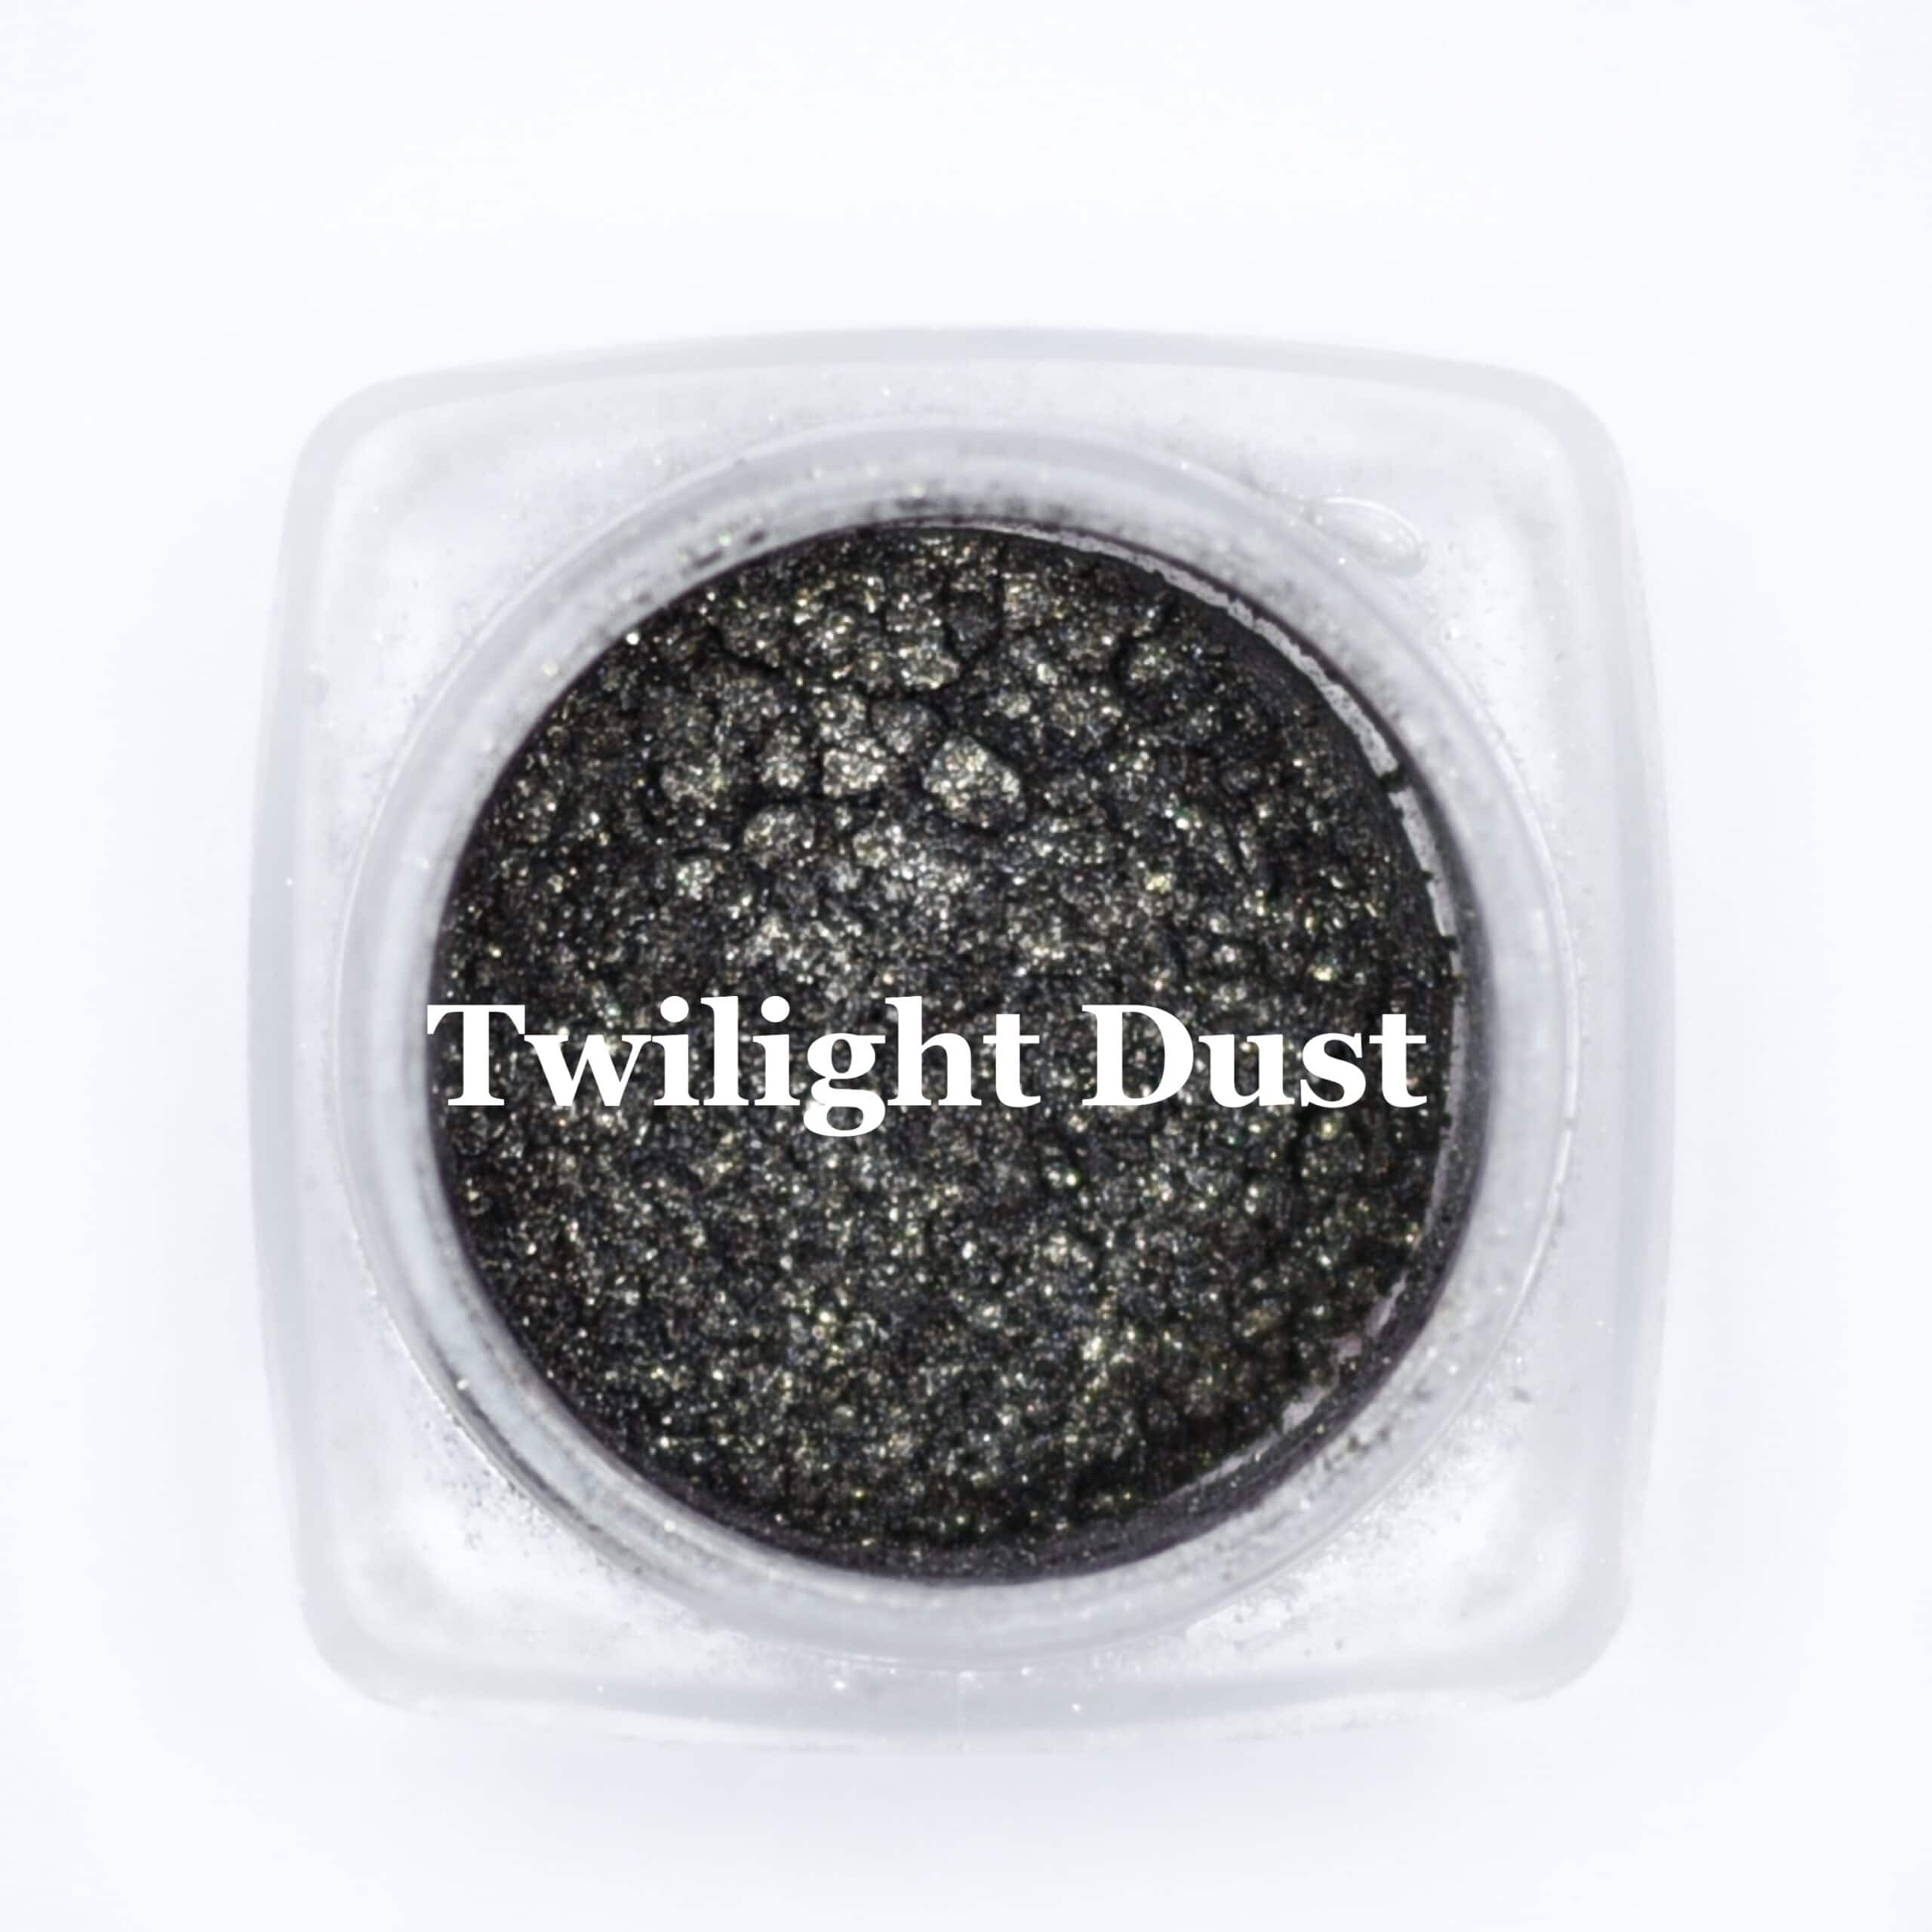 eye shadow twilight dust